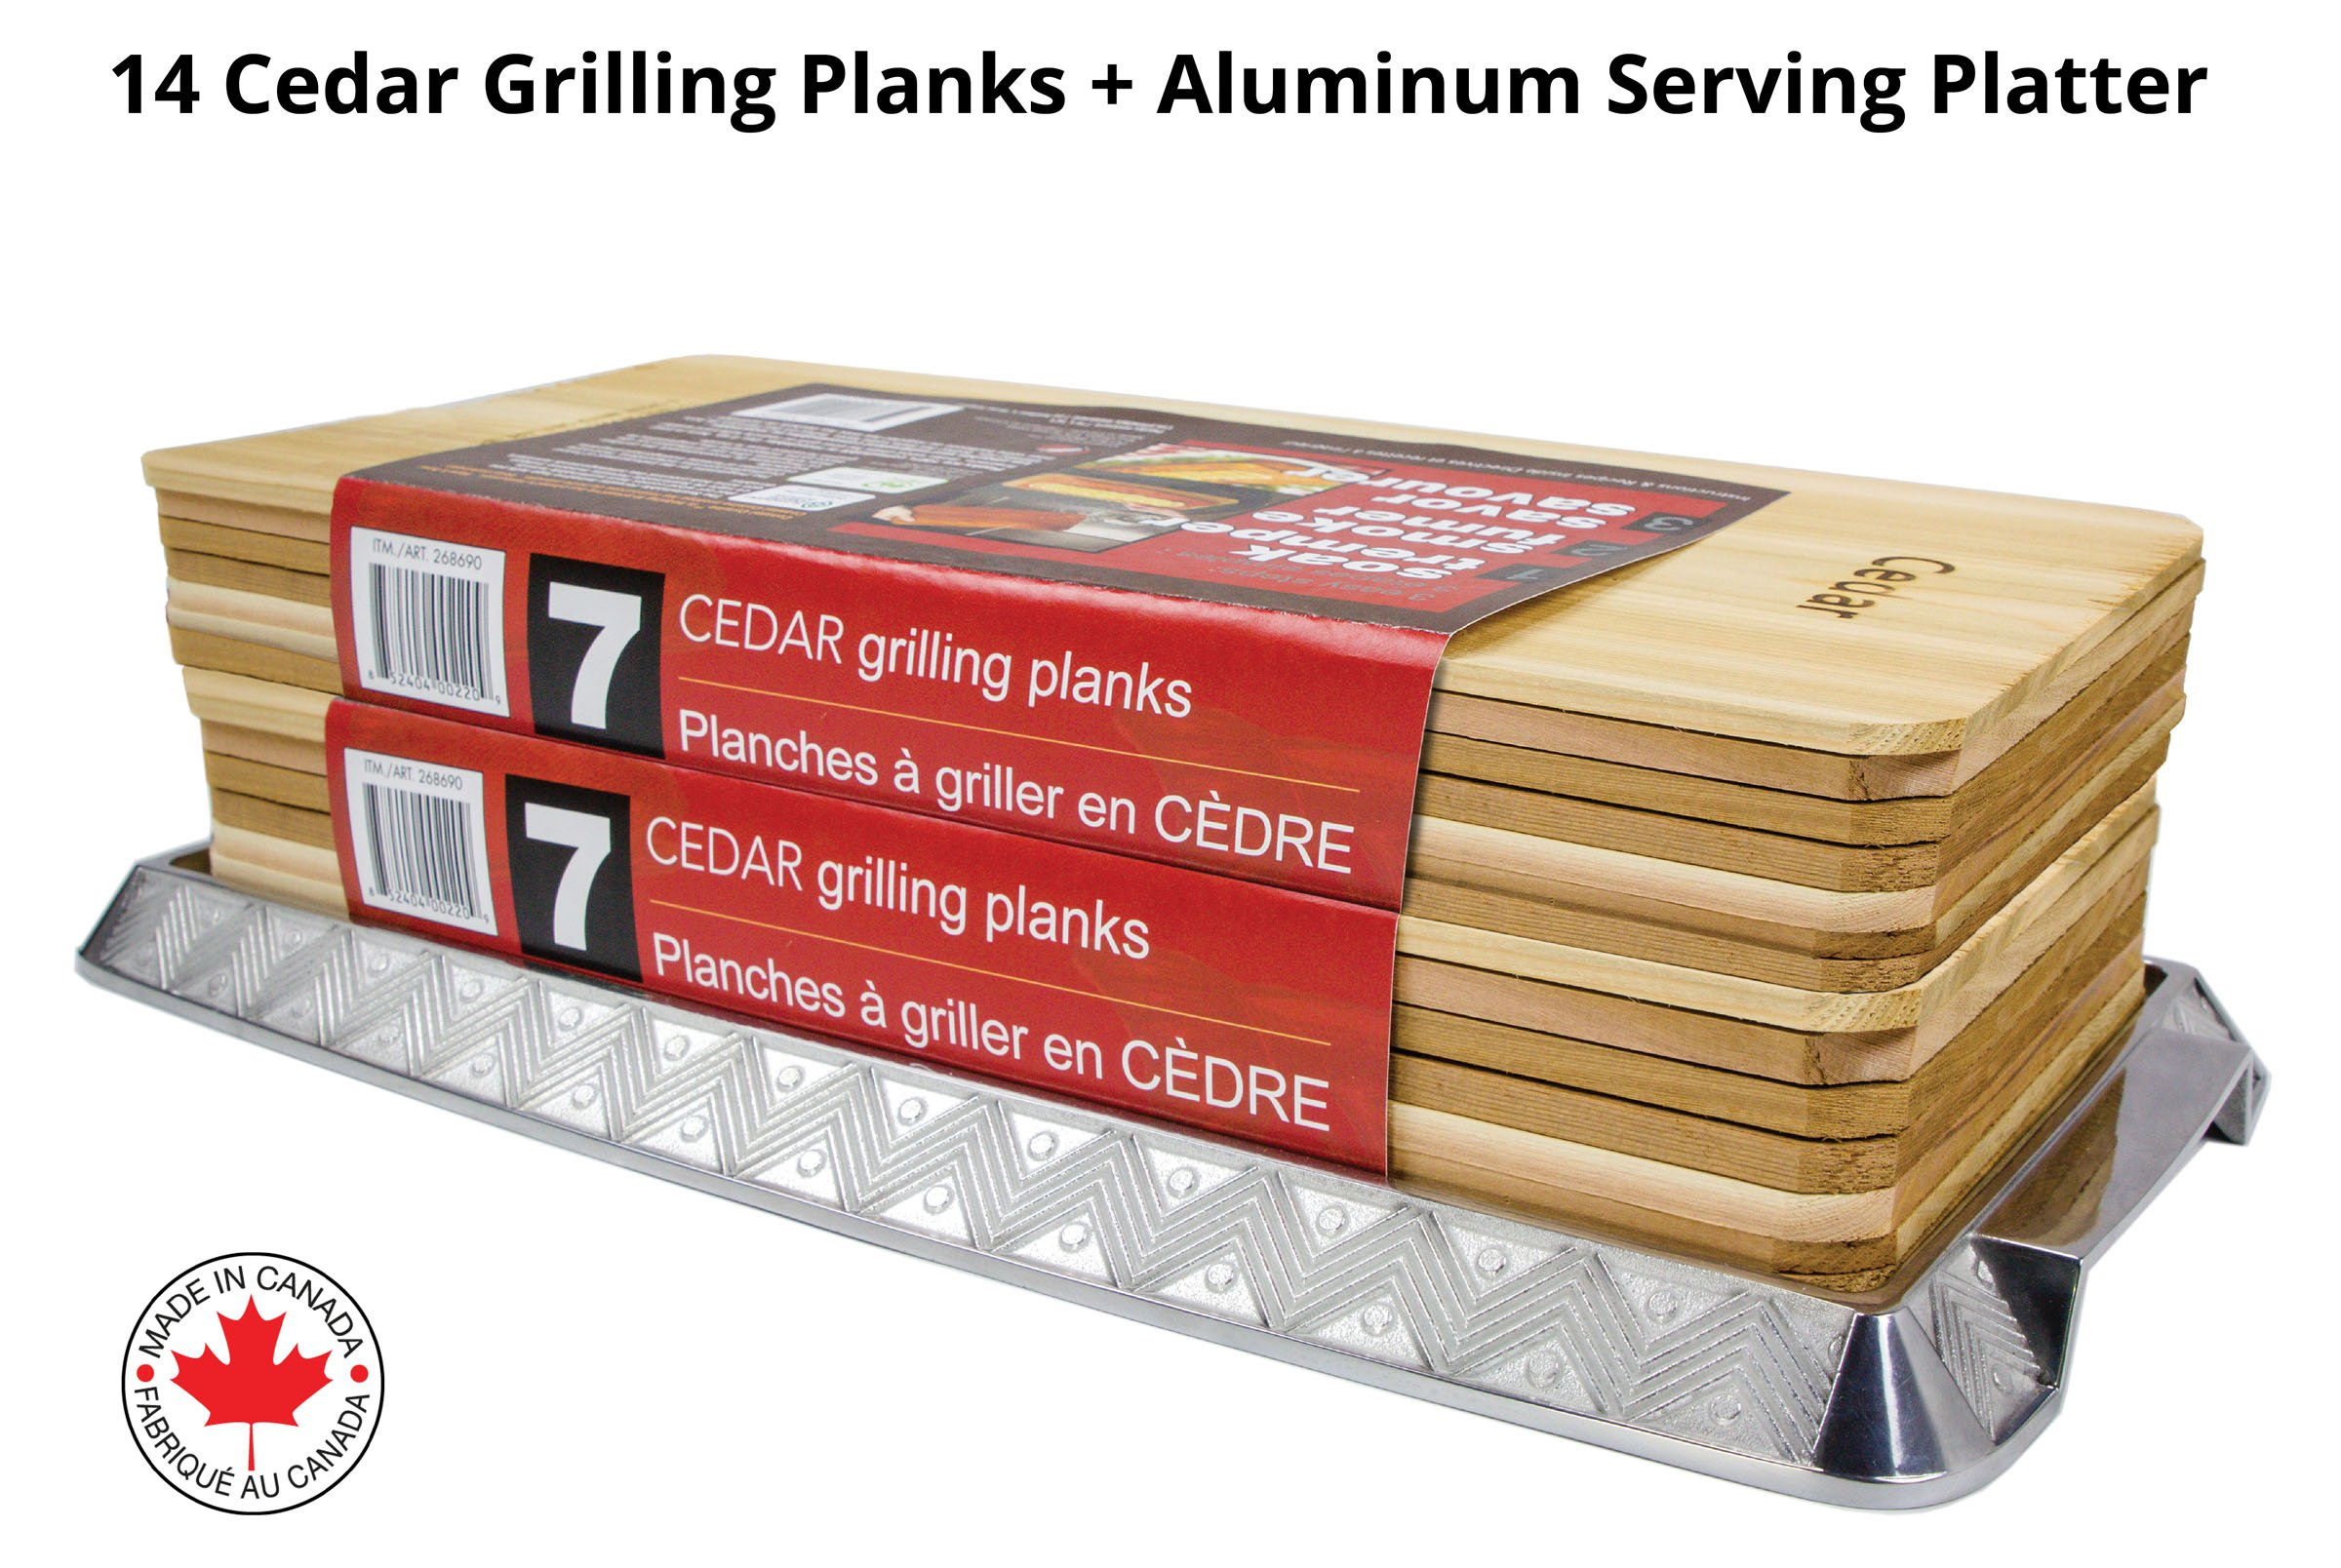 Coastal Cuisine 14 Pack 7x16'' Cedar Grilling Planks + Aluminum Serving Platter – Perfect for any grilling enthusiast.  Enjoy delicious restaurant quality meals and a stunning presentation.